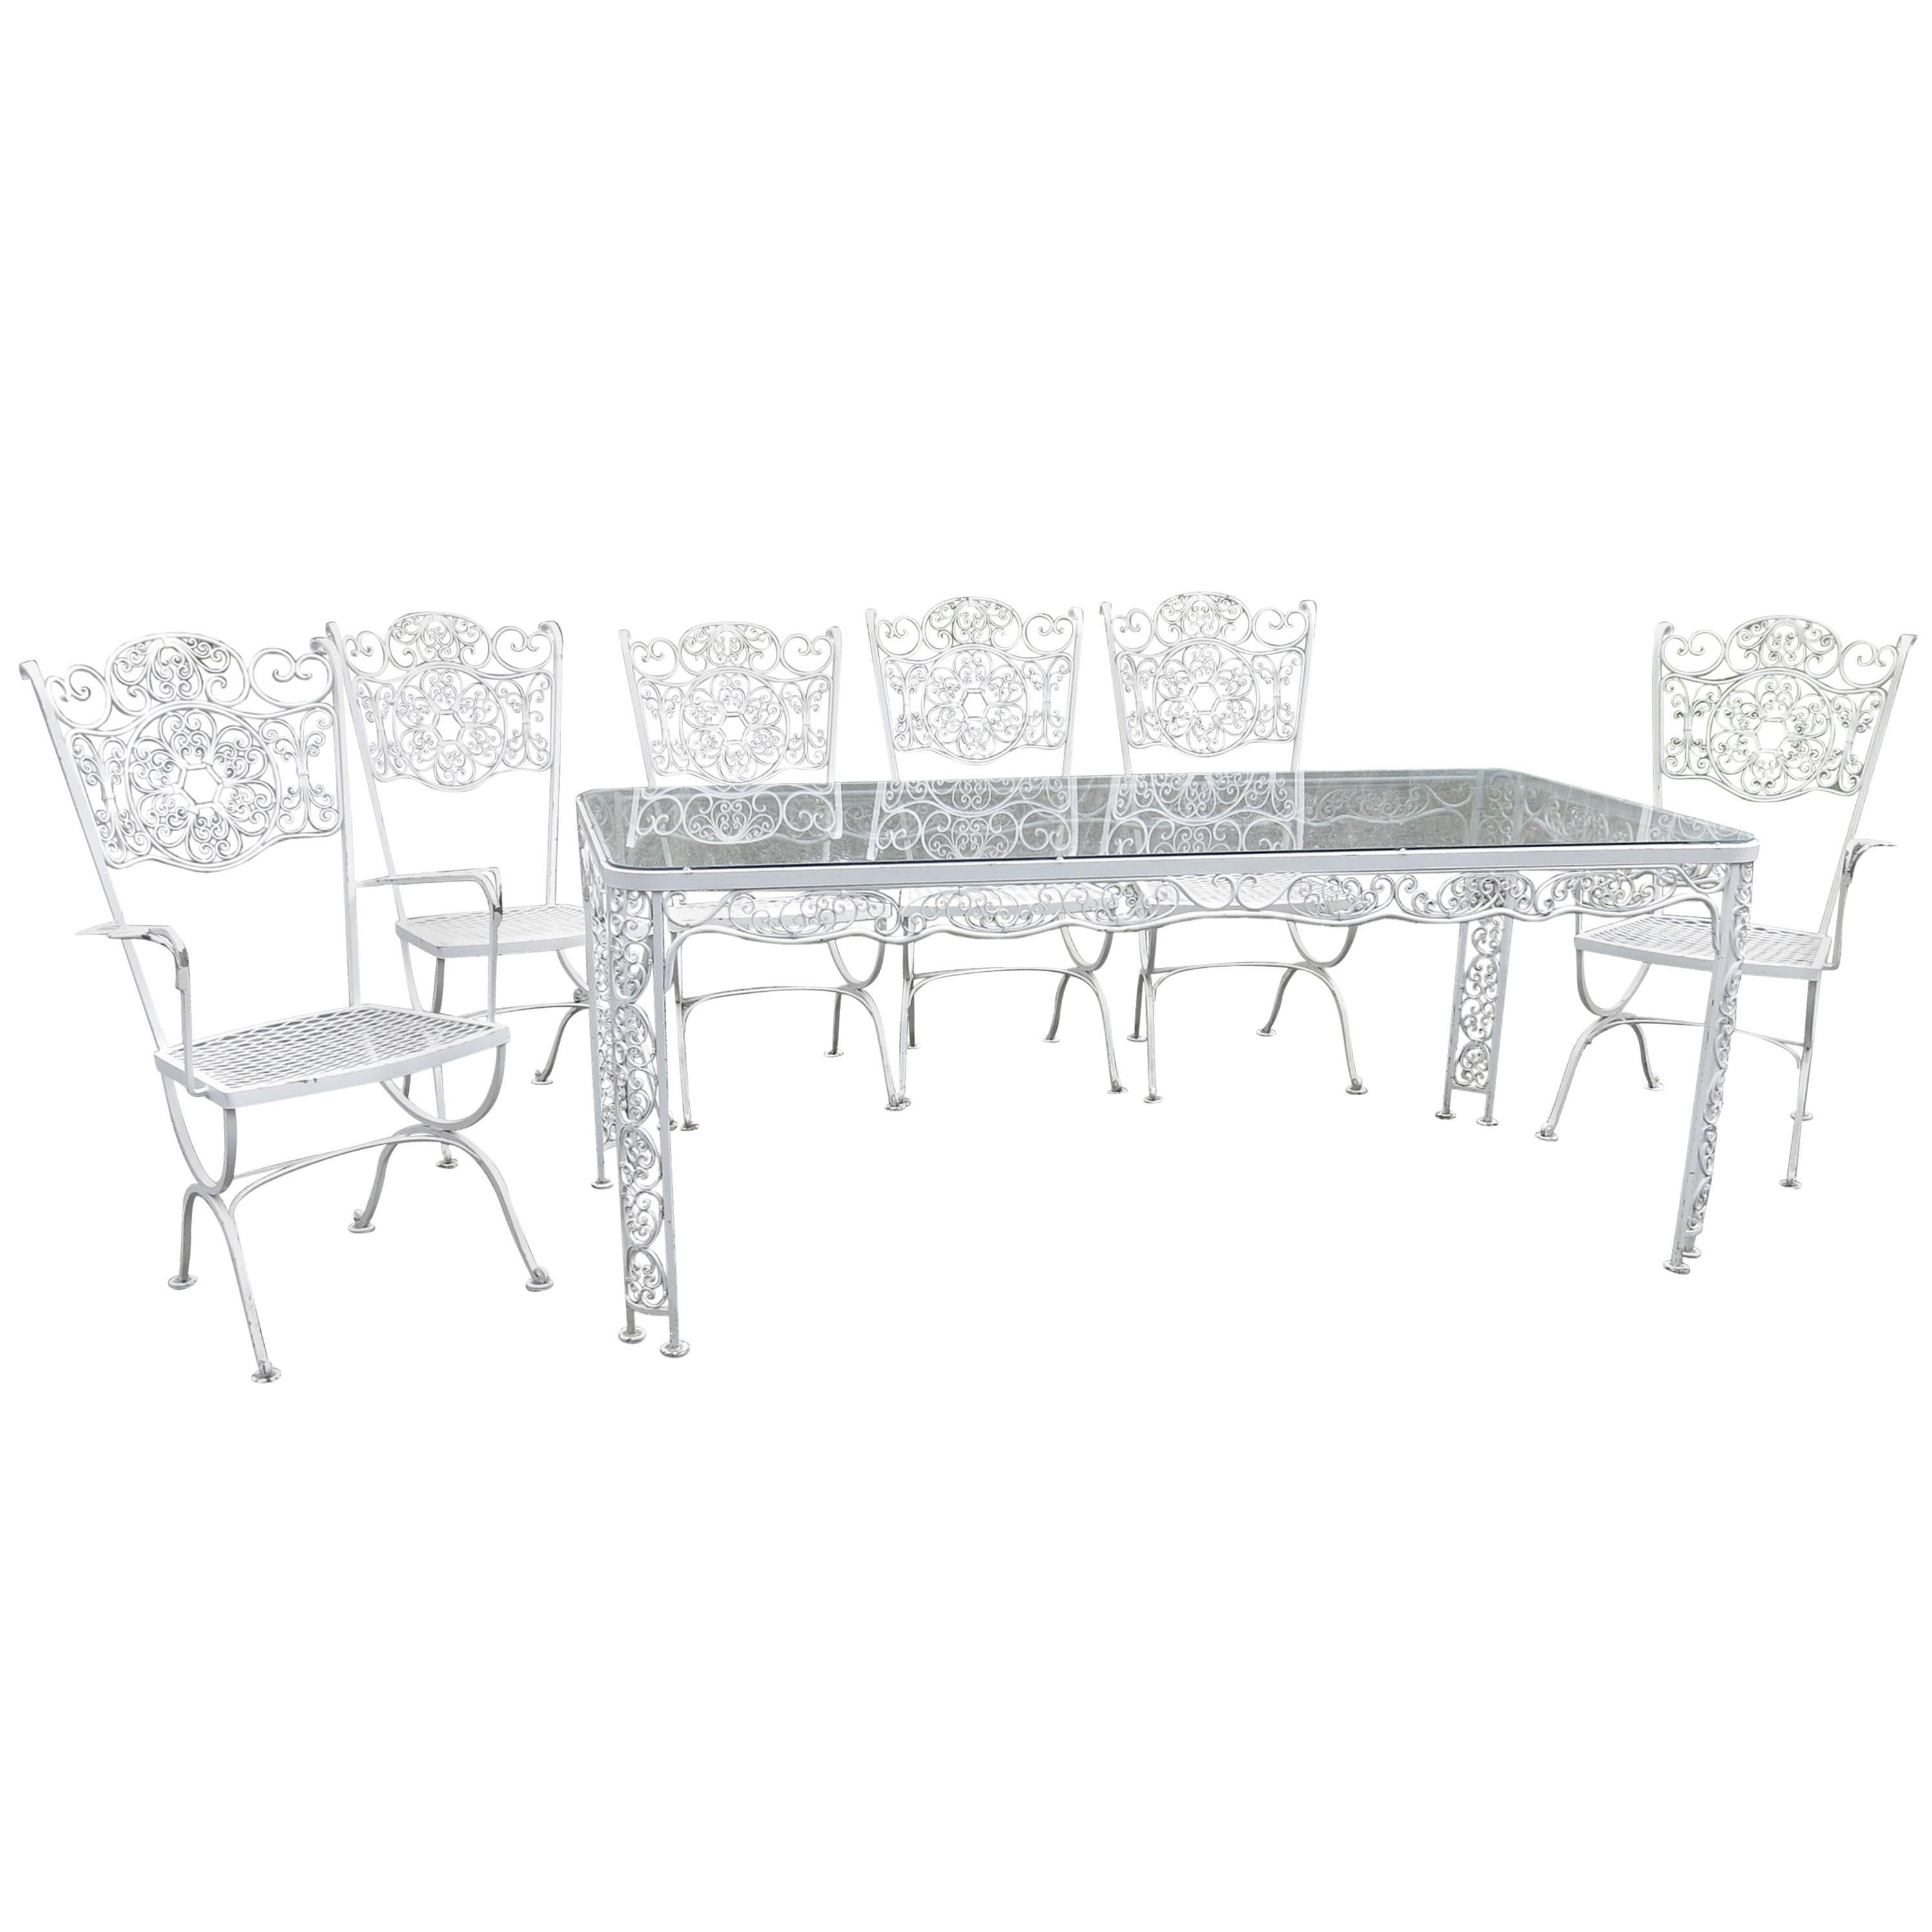 Woodard Andalusian Dining Set Cast Iron Patio Set Of Seven Pieces For Sale